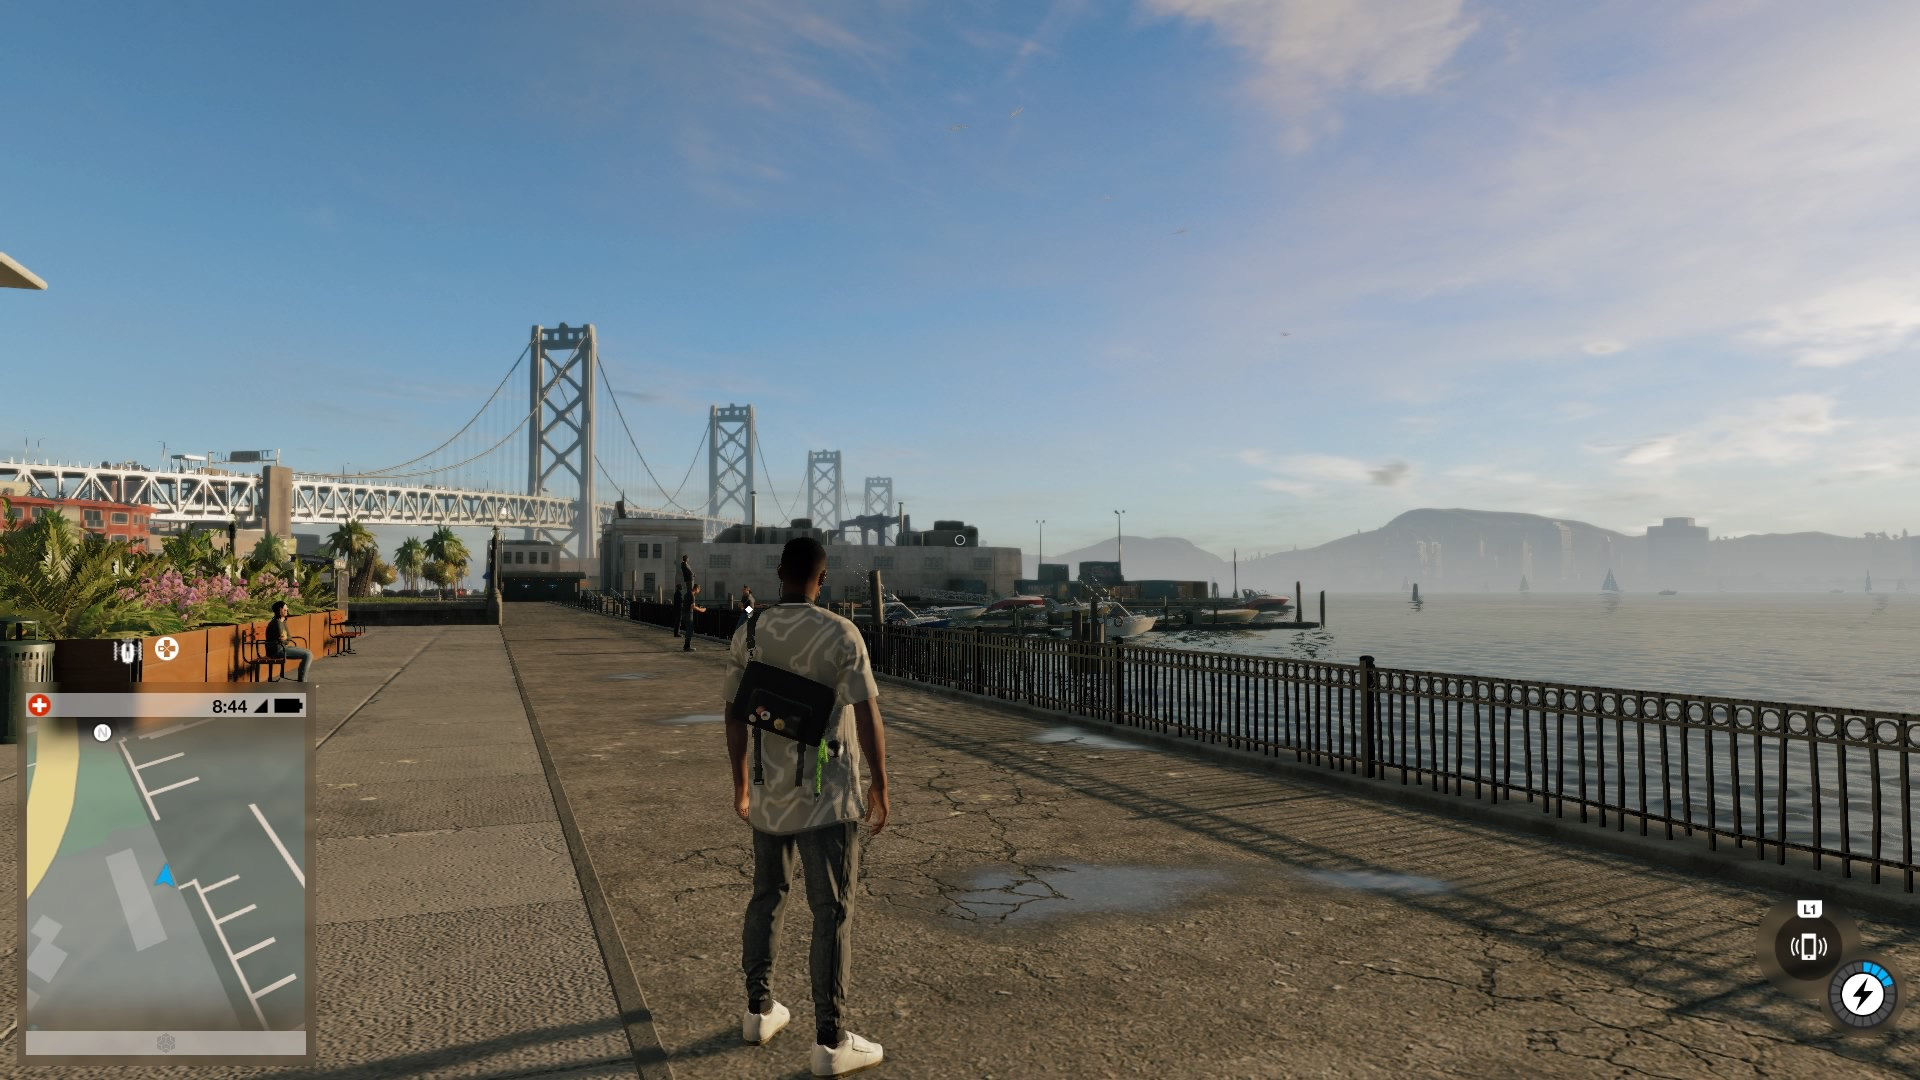 watch_dogs_2_20170801182200.jpg